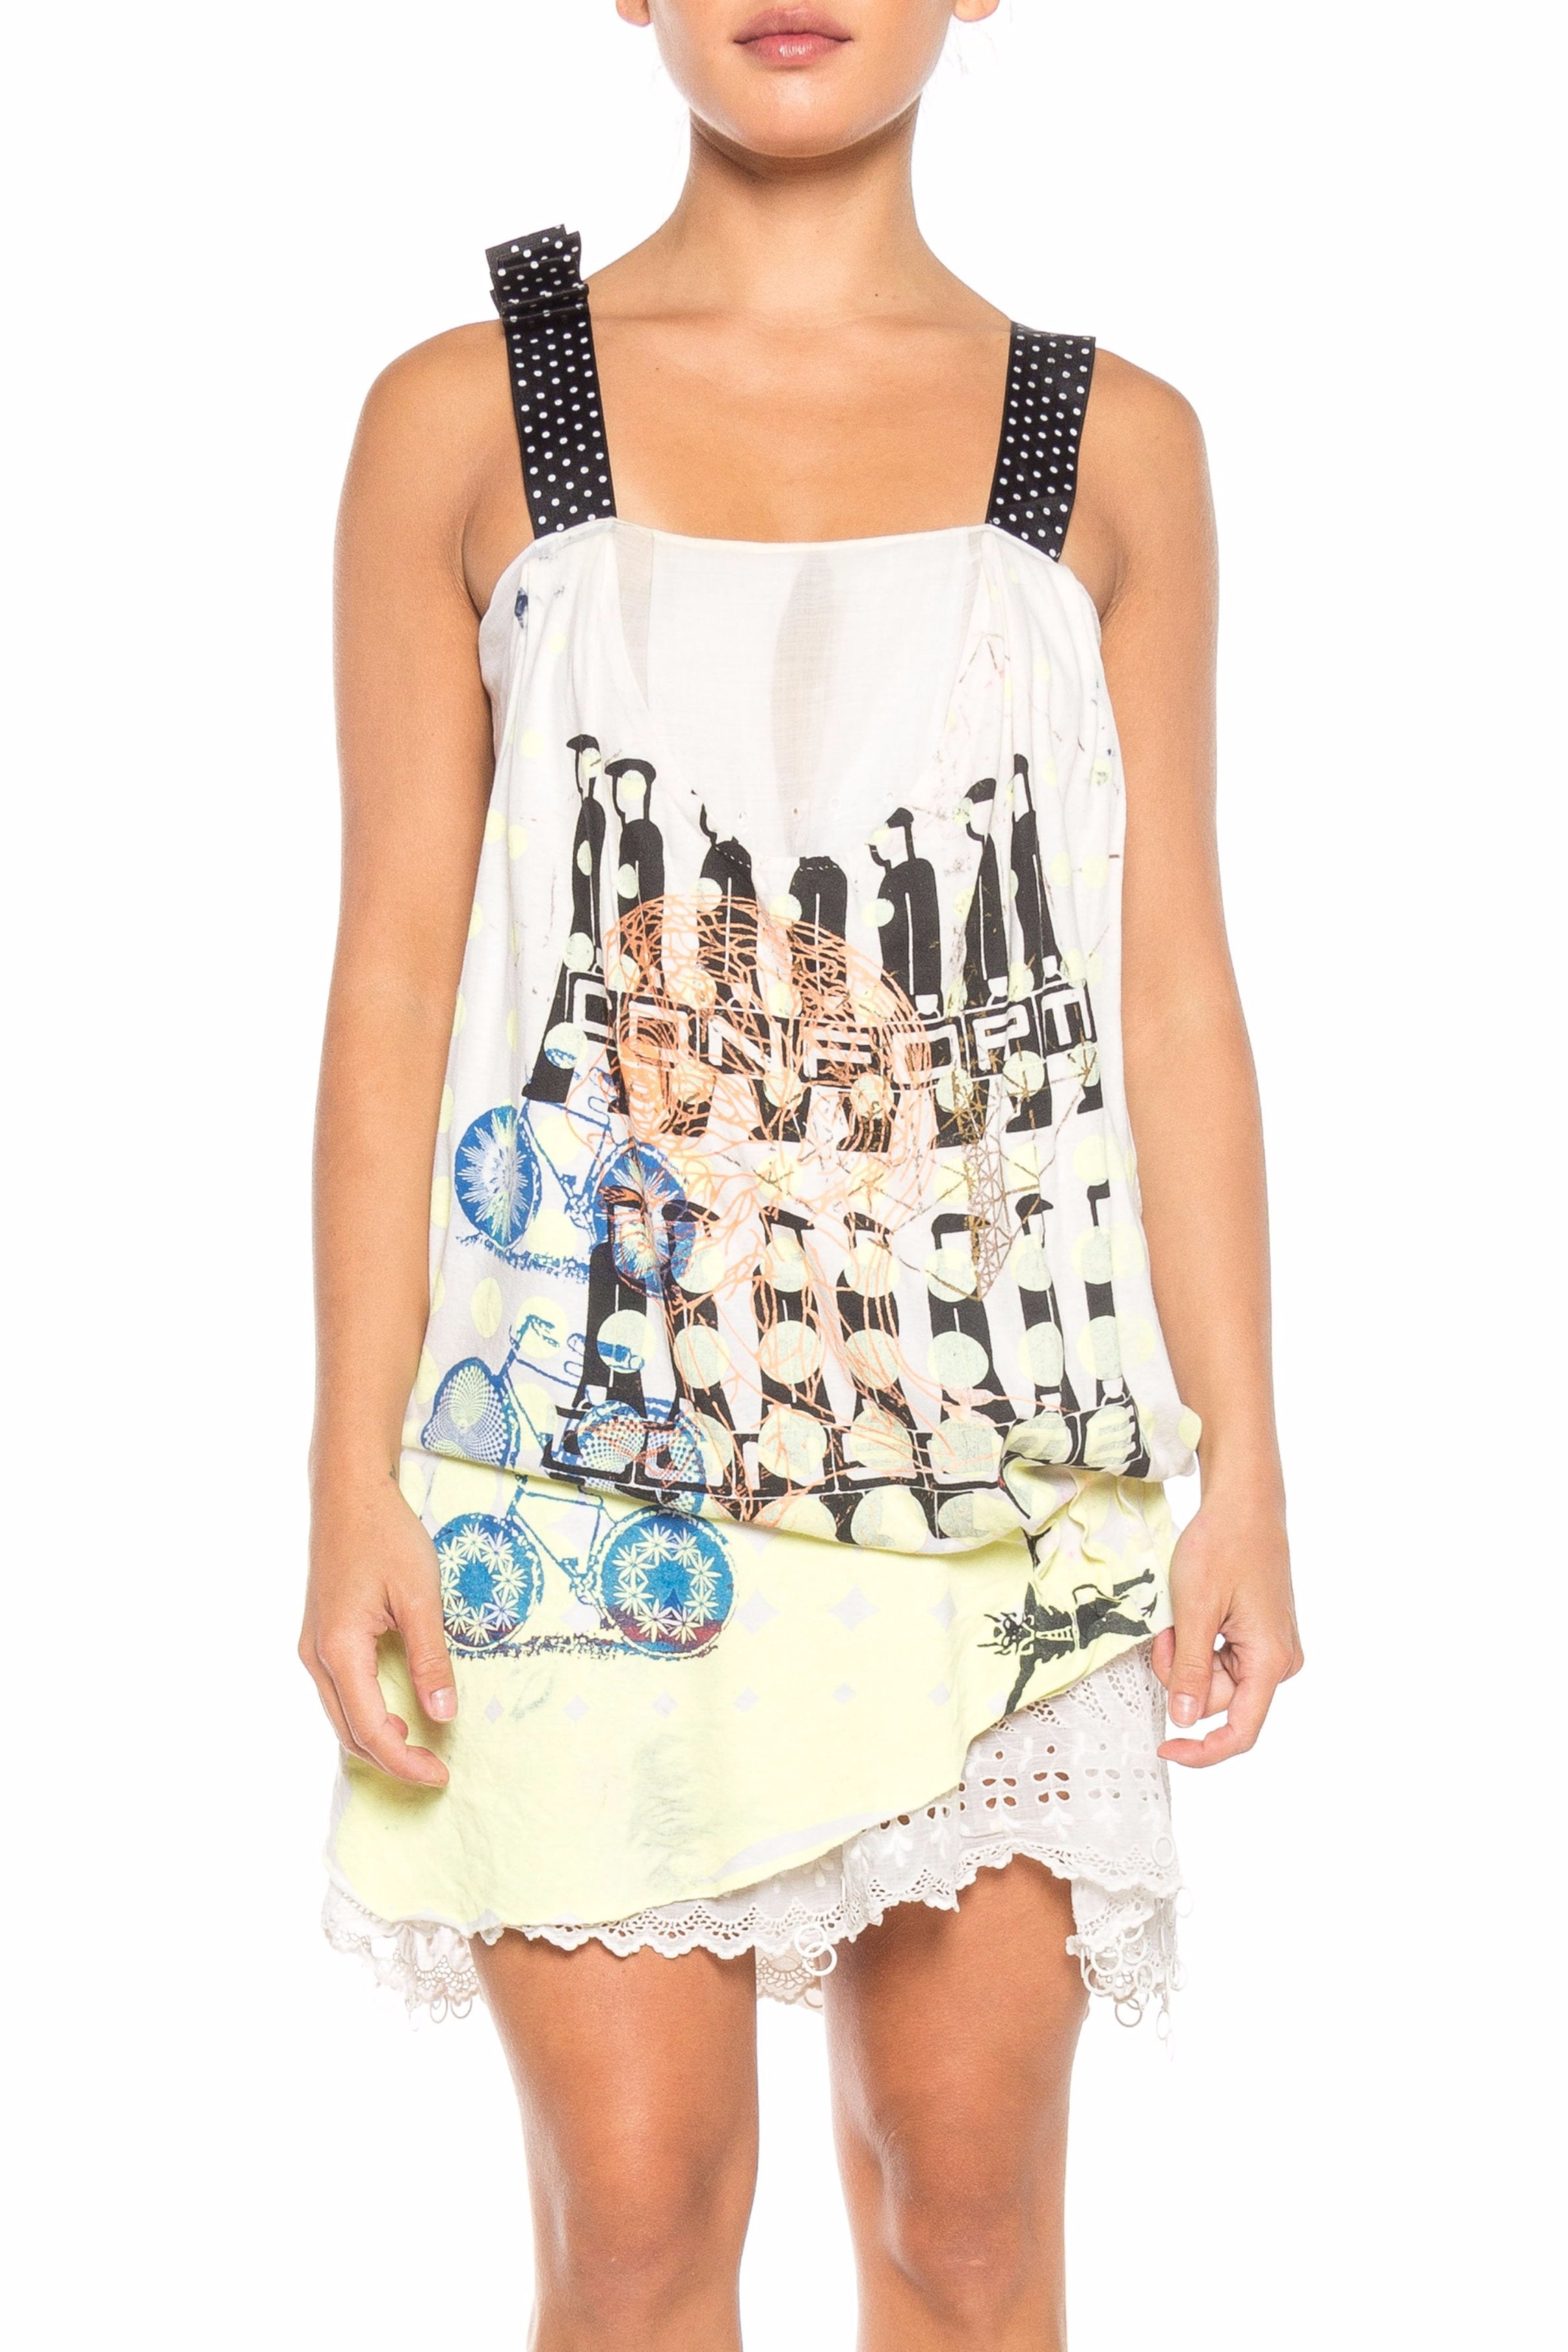 MORPHEW COLLECTION Black & White Cotton Jersey Recycled Punk T-Shirt Party Dress With Victorian Lace Beading